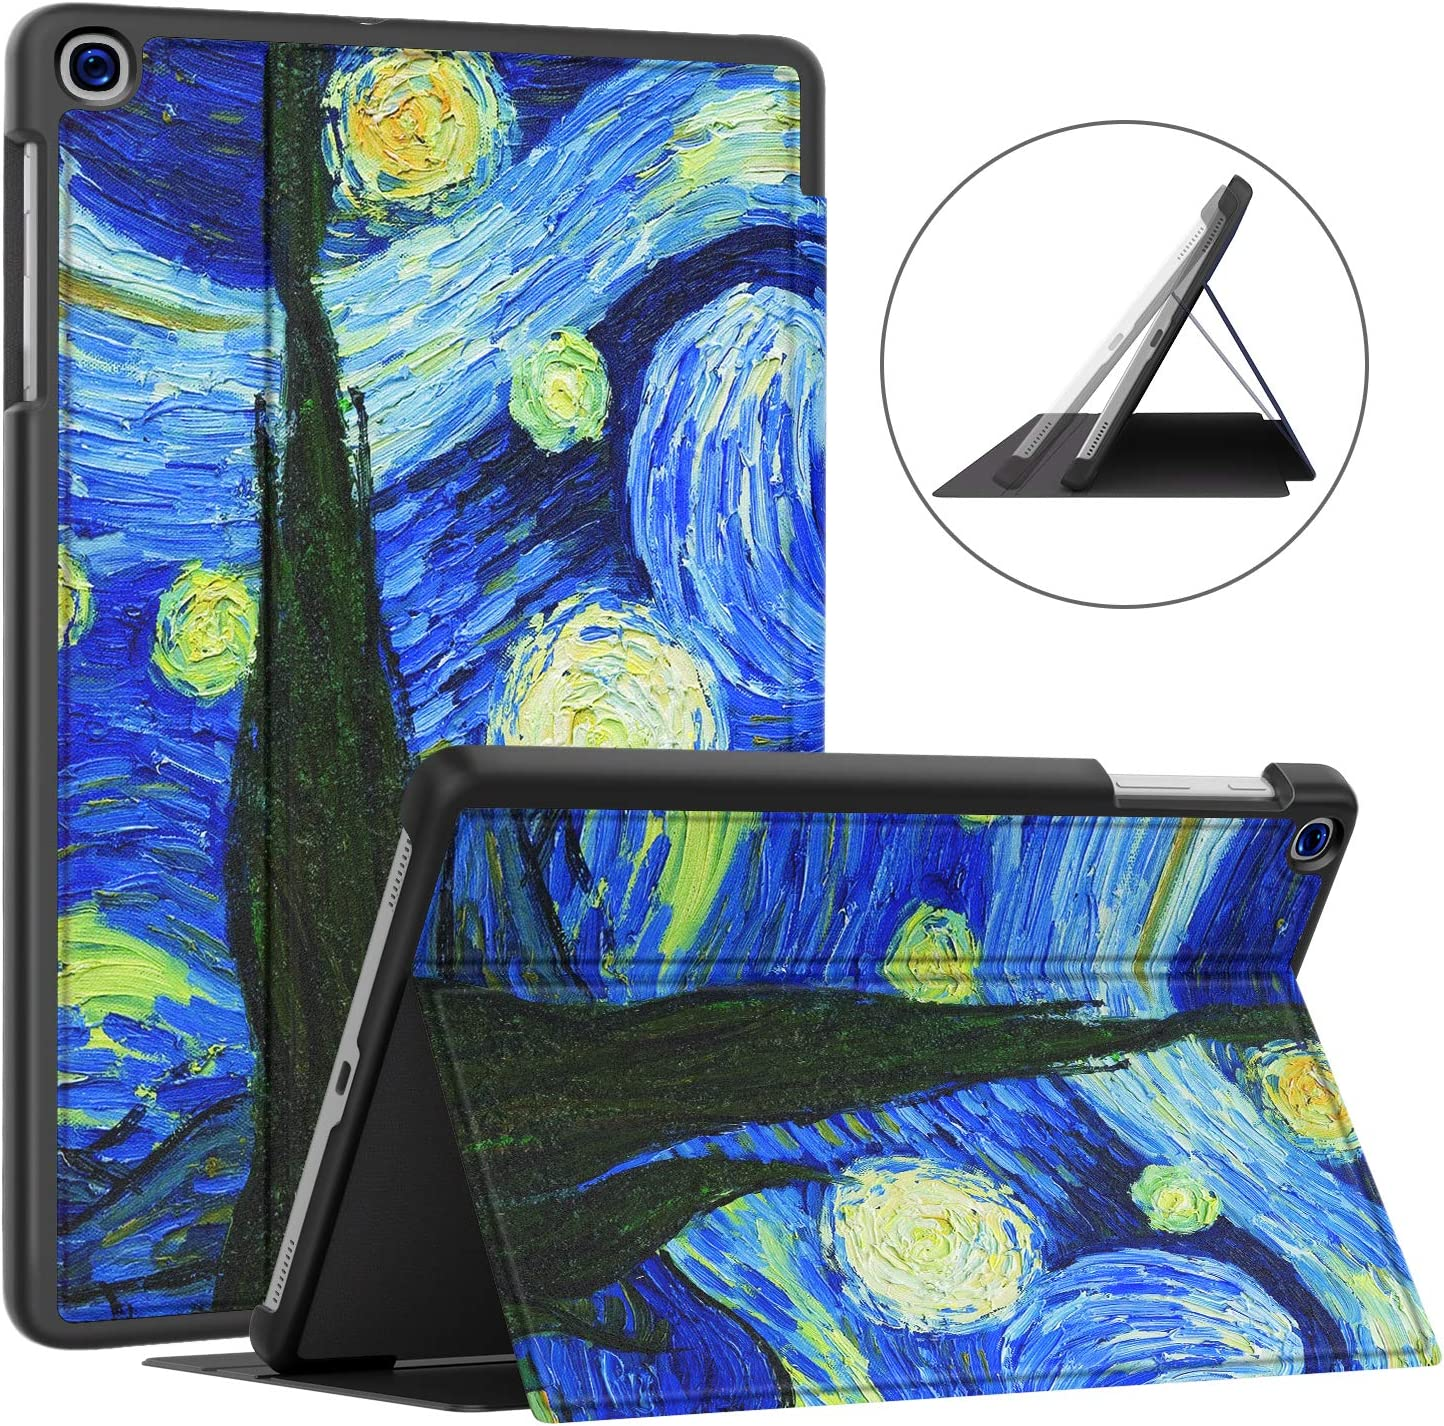 Soke Galaxy Tab A 10.1 Case 2019, Premium Shock Proof Stand Folio Case,Multi- Viewing Angles, Soft TPU Back Cover for Samsung Galaxy Tab A 10.1 inch Tablet [SM-T510/T515/T517],Starry Night